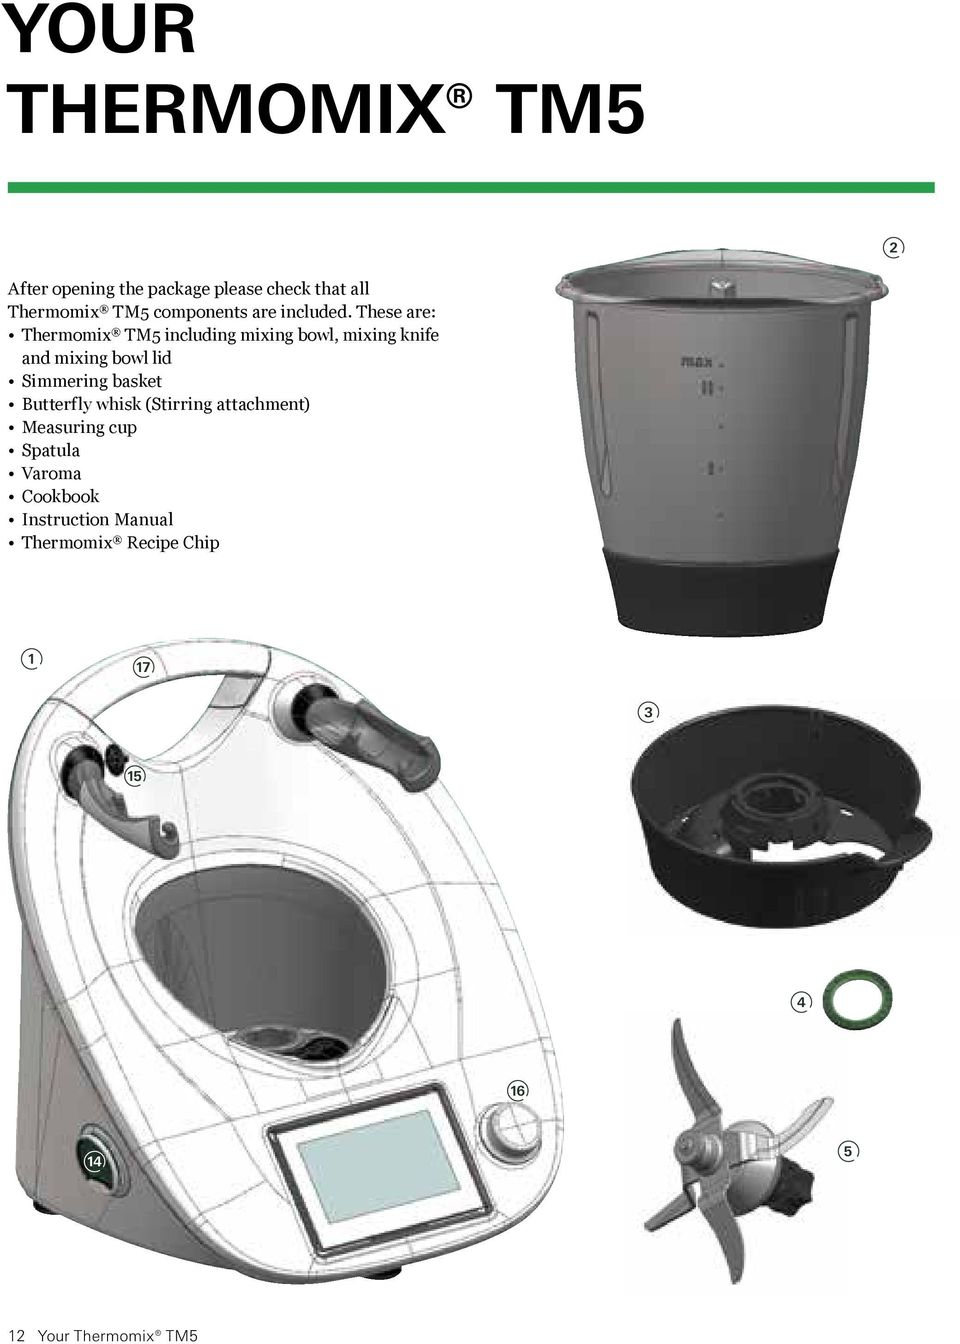 These are: Thermomix TM5 including mixing bowl, mixing knife and mixing bowl lid Simmering